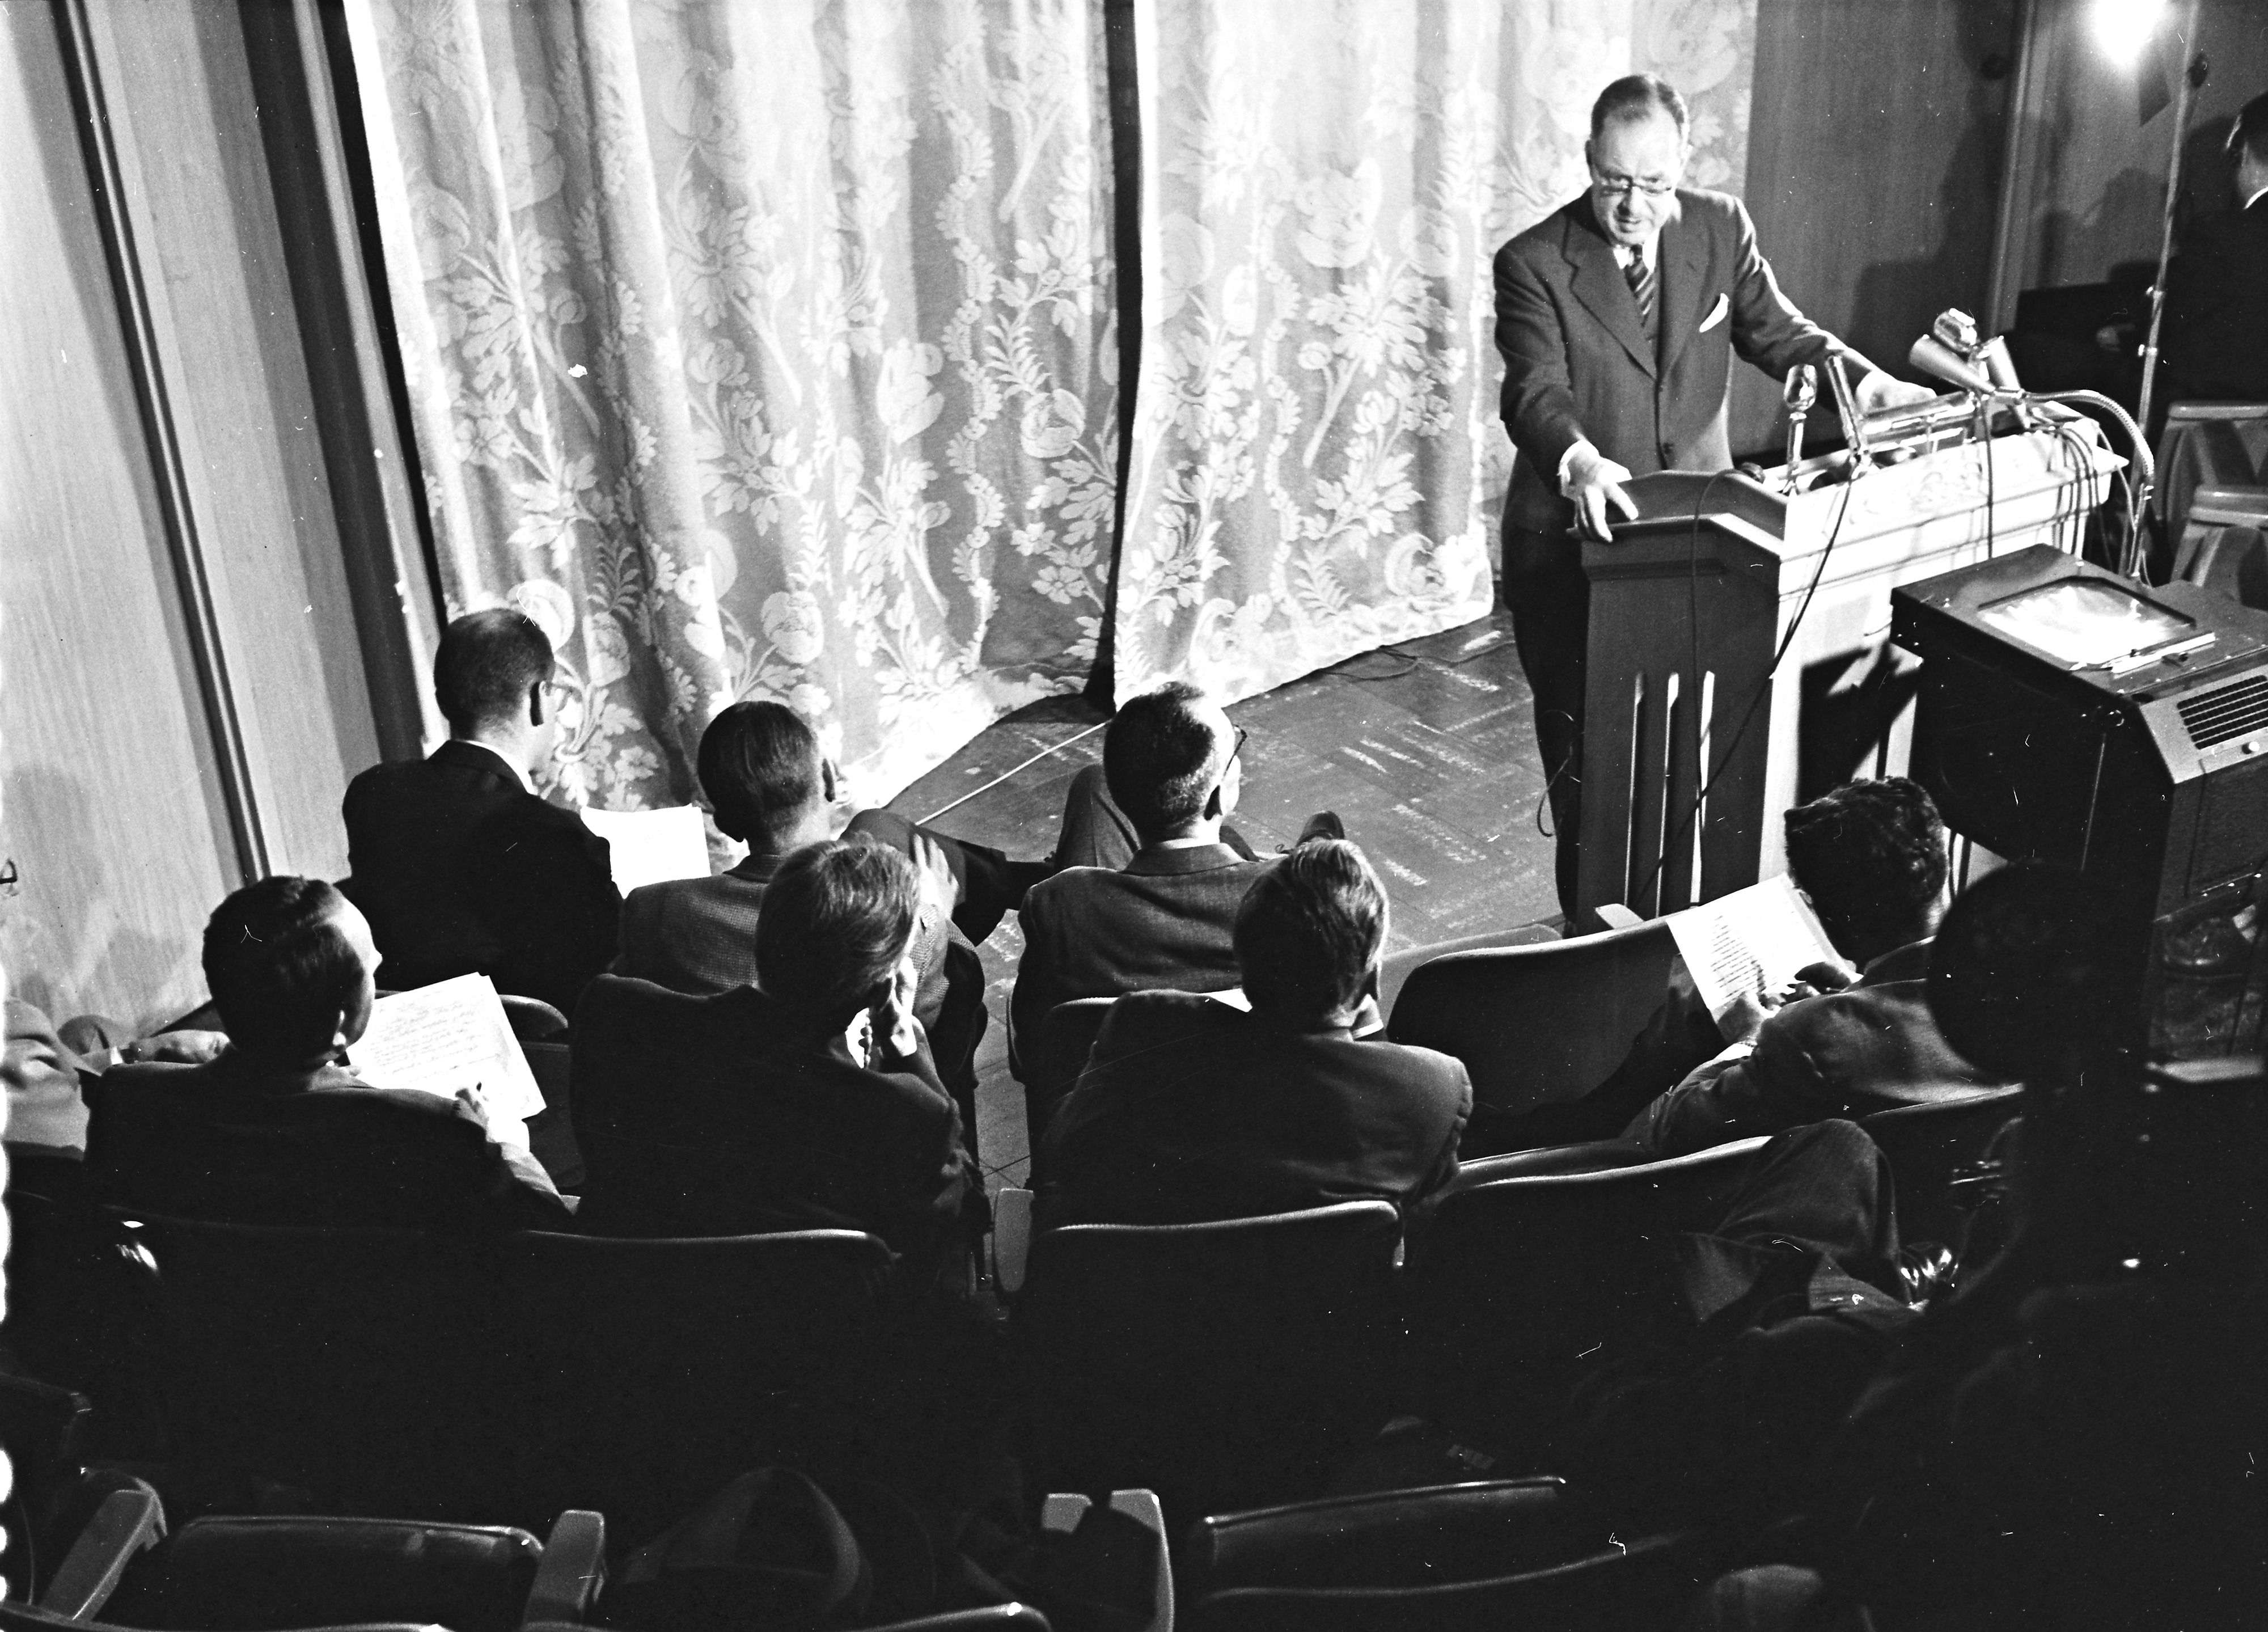 Dr. Thomas Francis, Jr. during briefing session for newsmen concerning polio vaccine evaluation study, April 1955 image